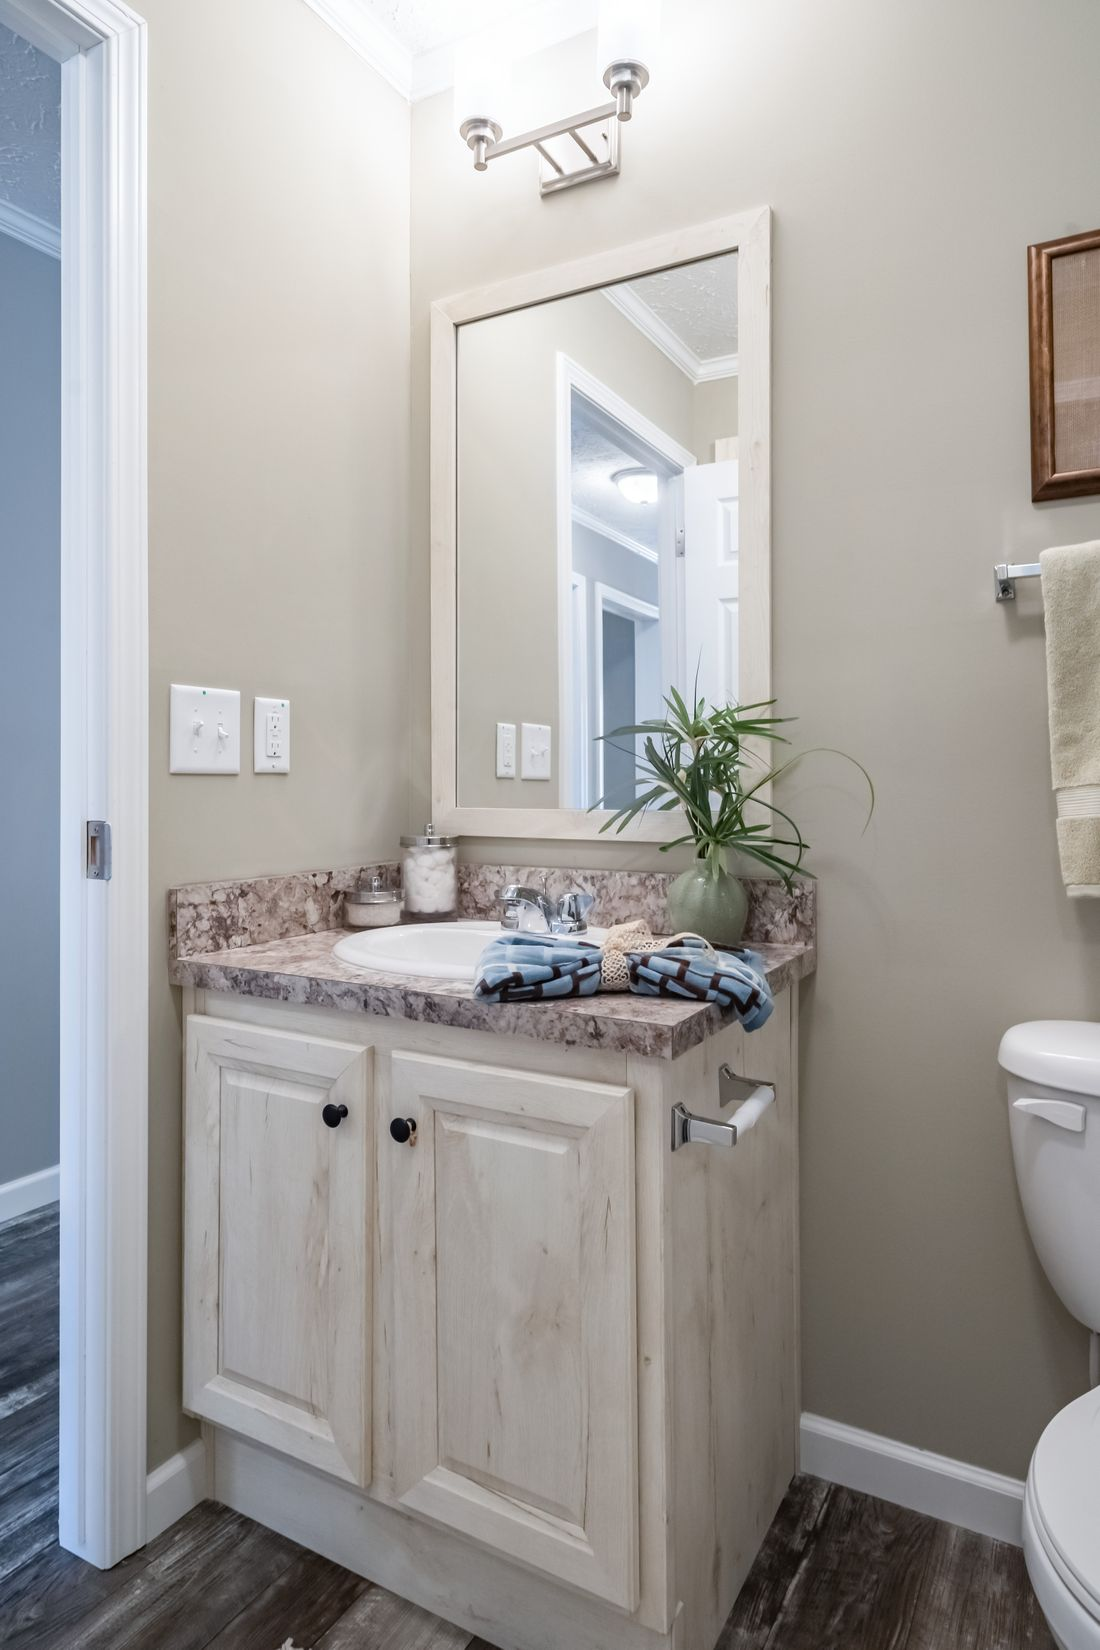 The 4608 ROCKETEER 5628 Guest Bathroom. This Manufactured Mobile Home features 3 bedrooms and 2 baths.